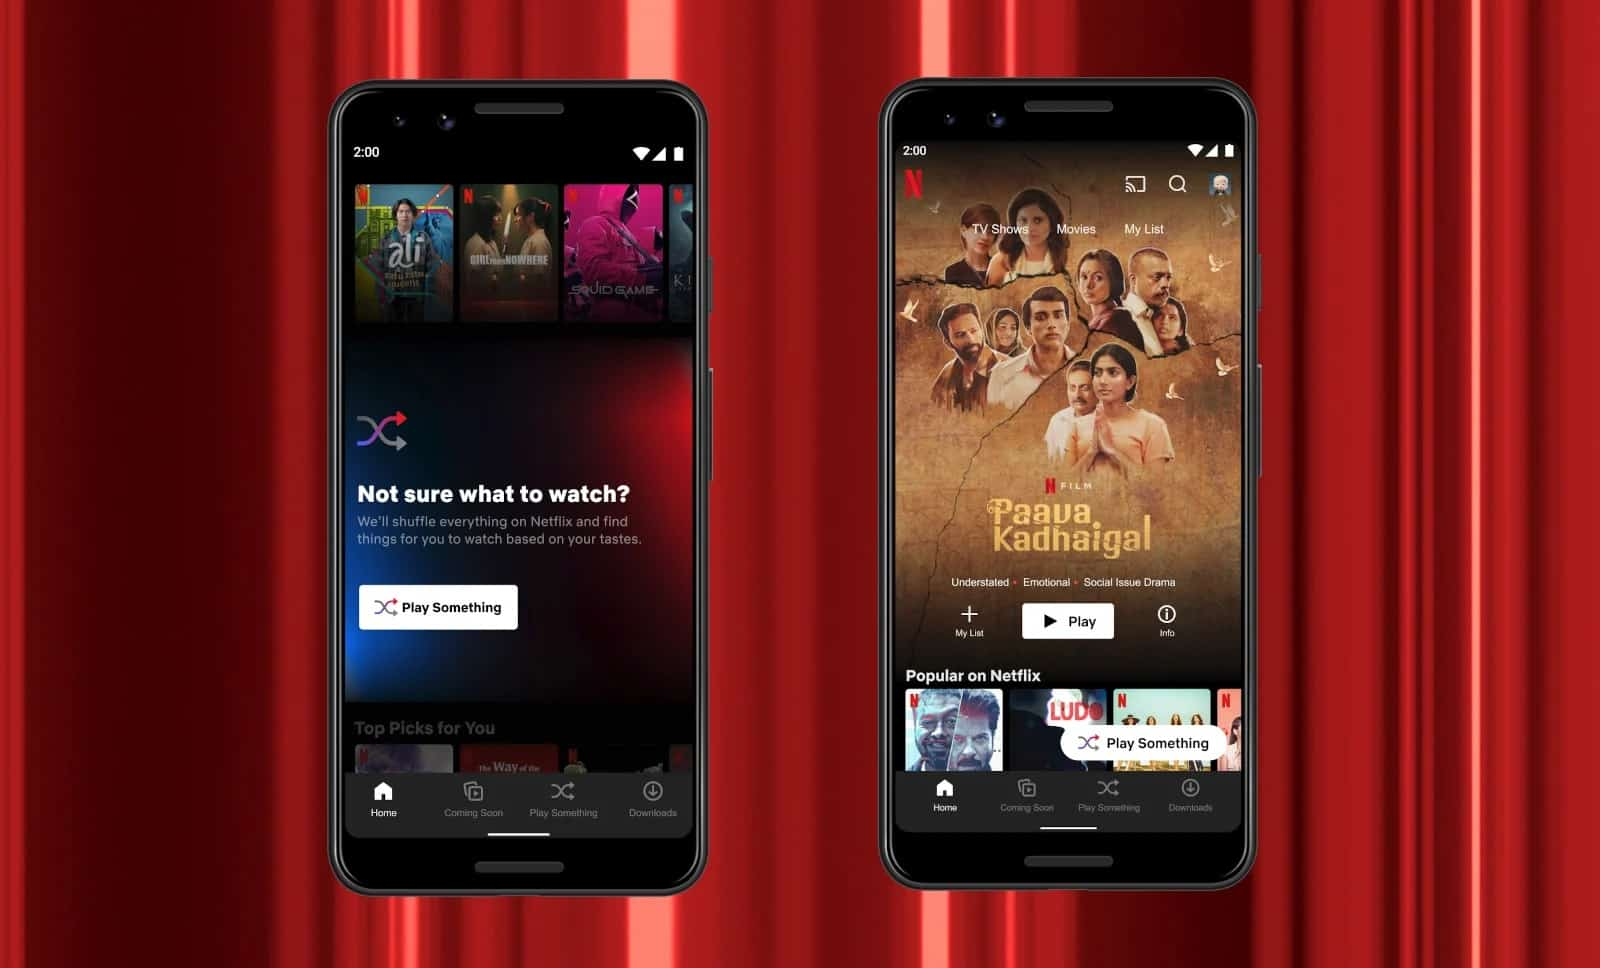 Netflix play something Android 2